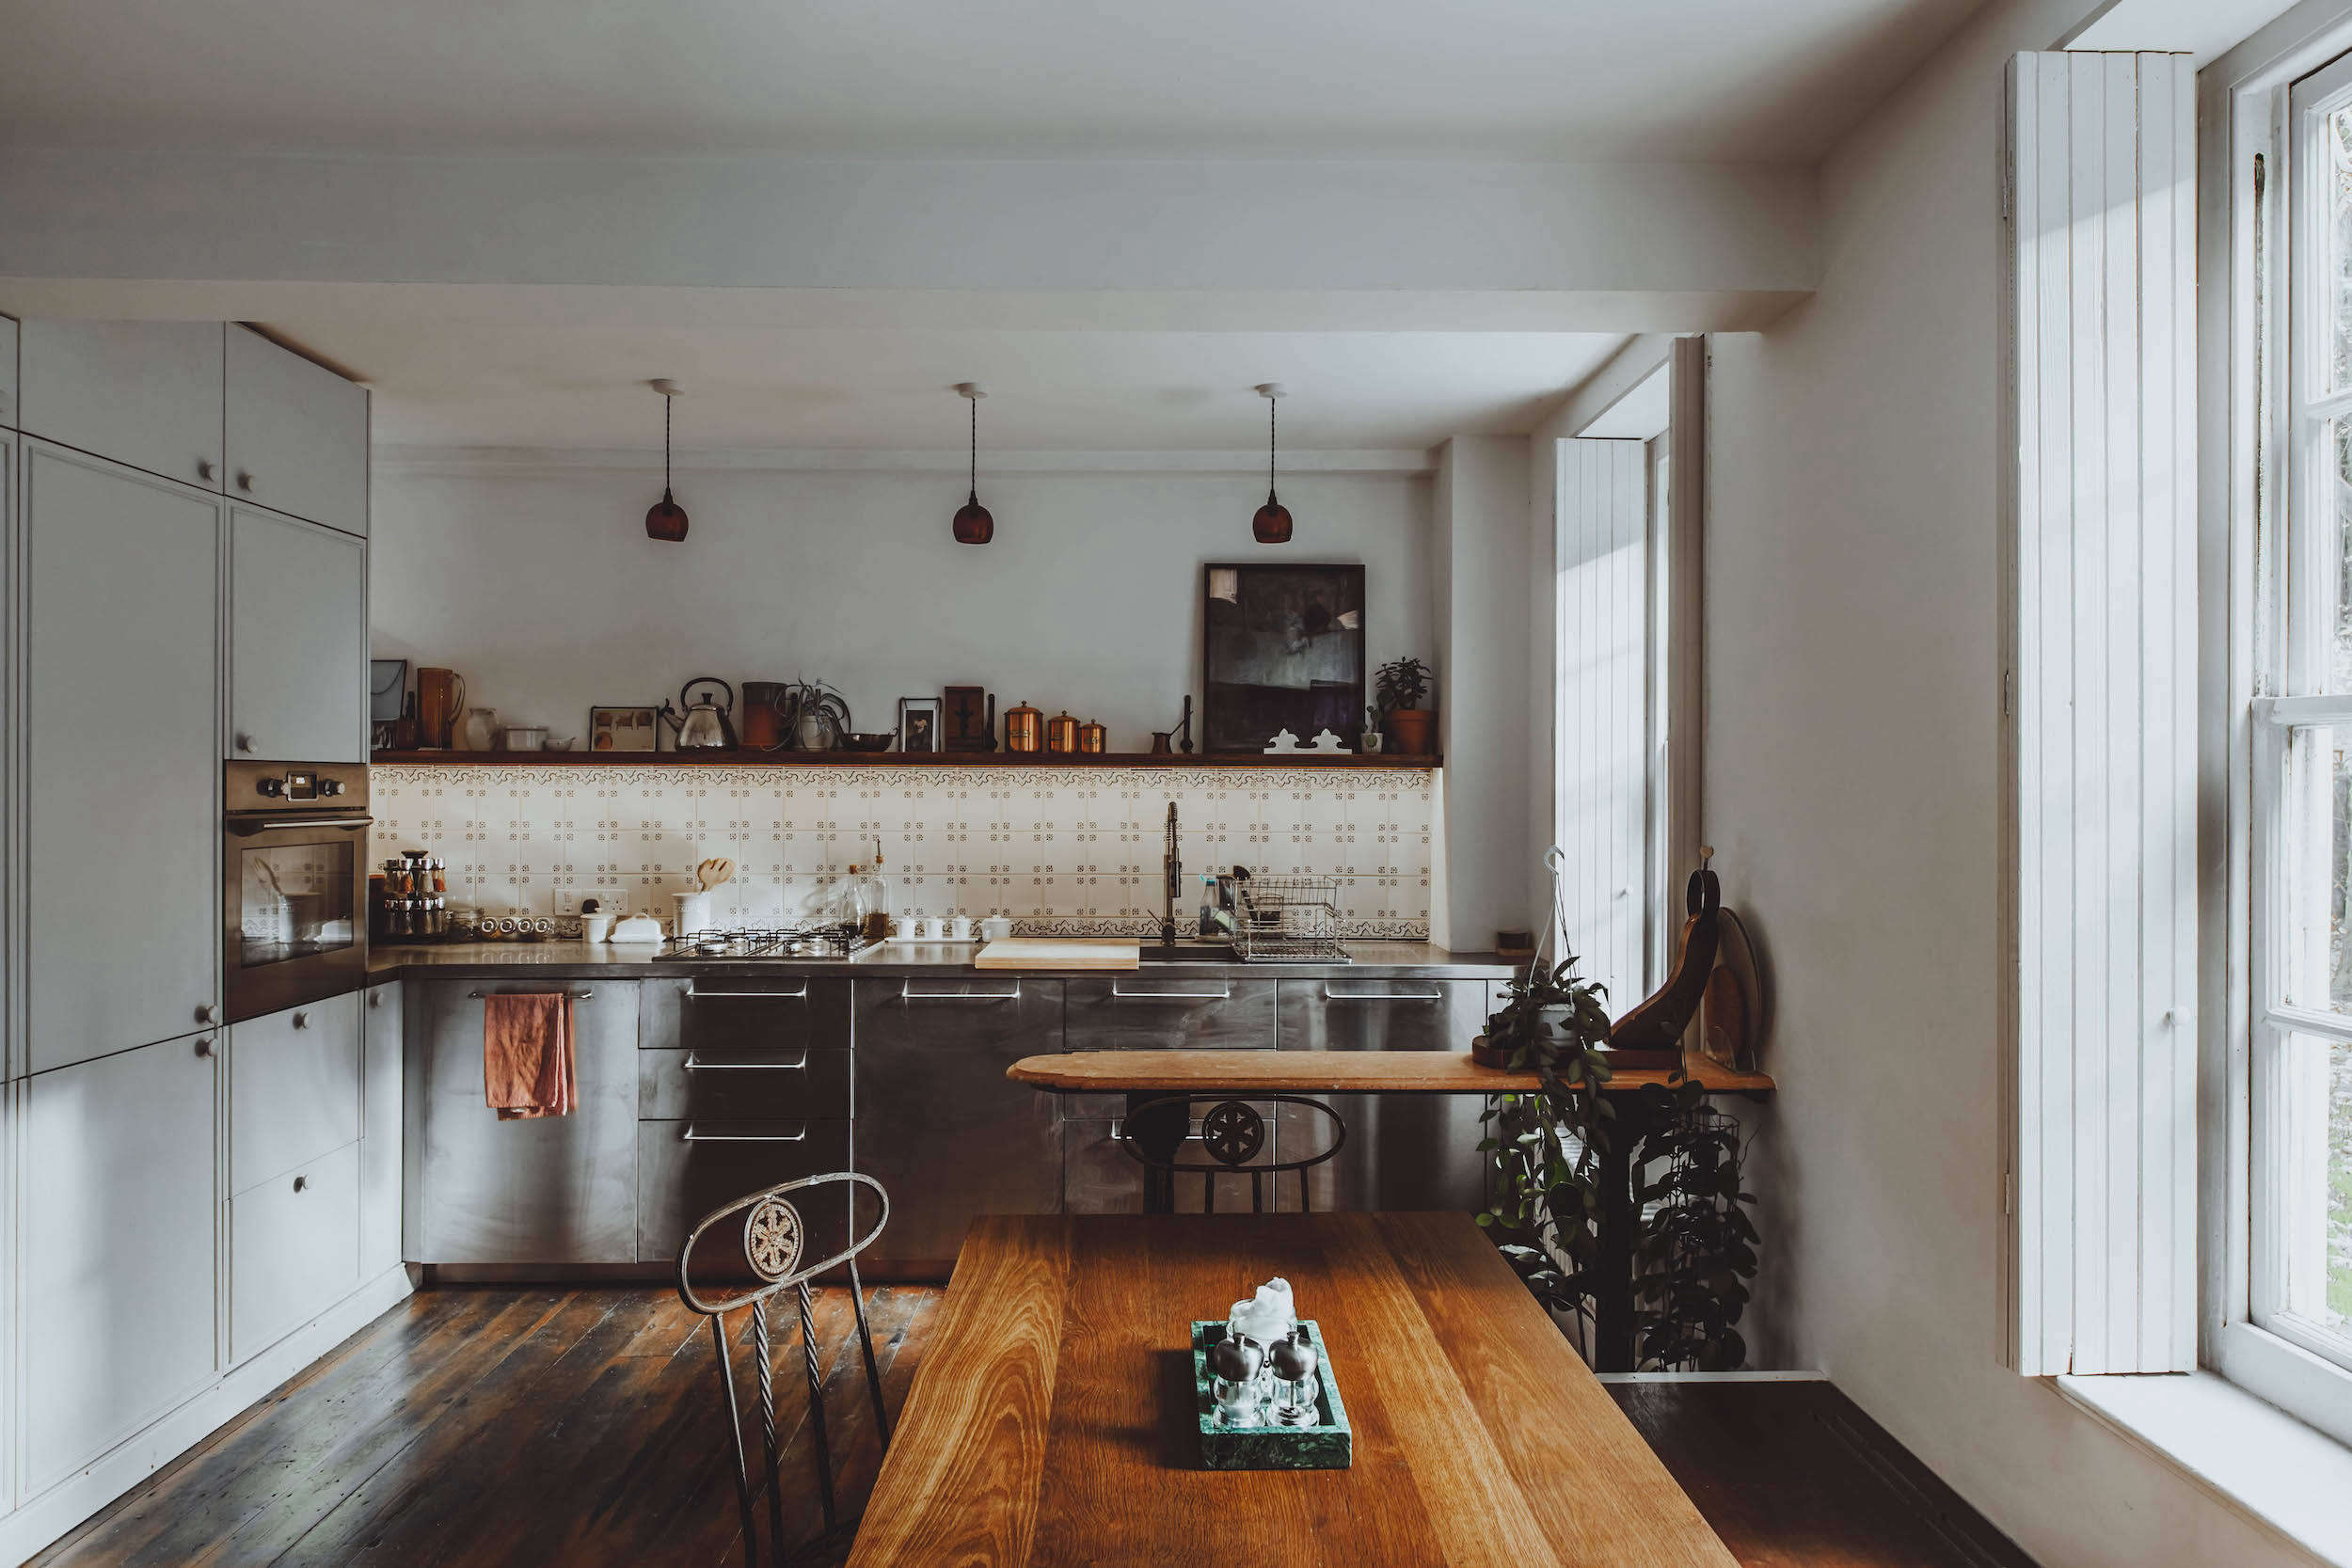 All Things Should Have Stories: A Richly Hued London Flat (With an Ikea Kitchen Too) - Remodelista